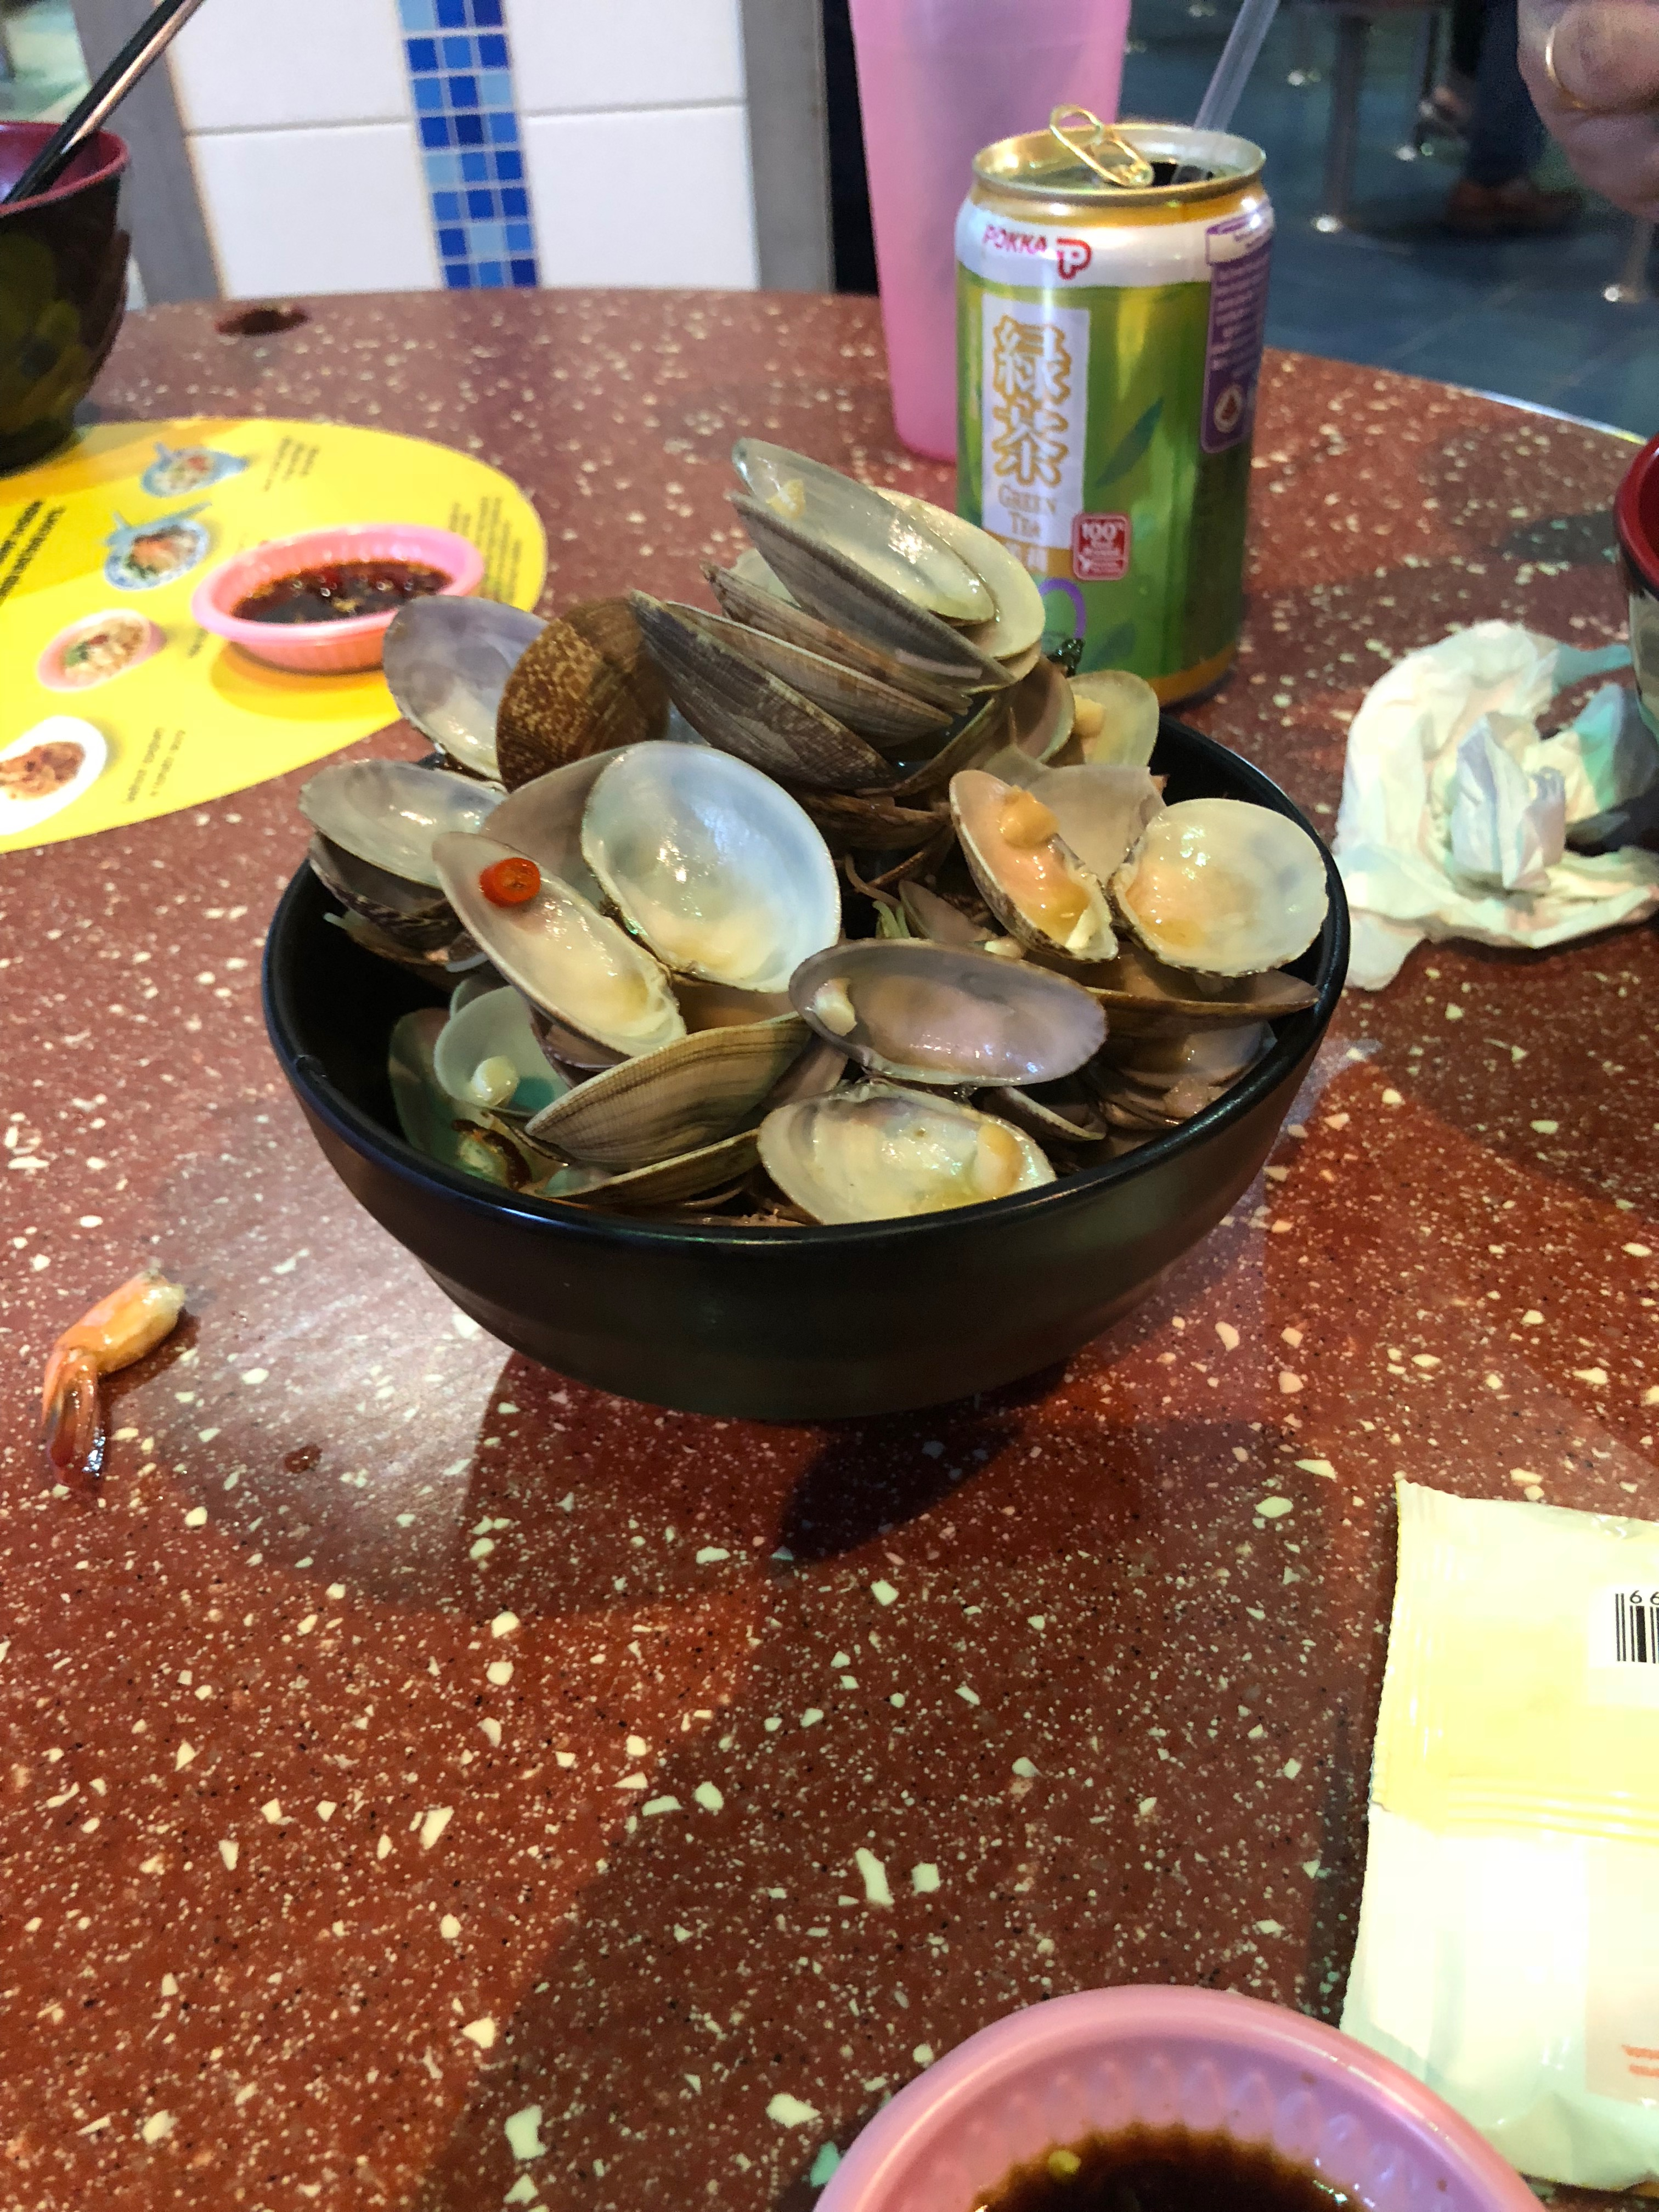 Deannas_Kitchen_Clam_Aftermath